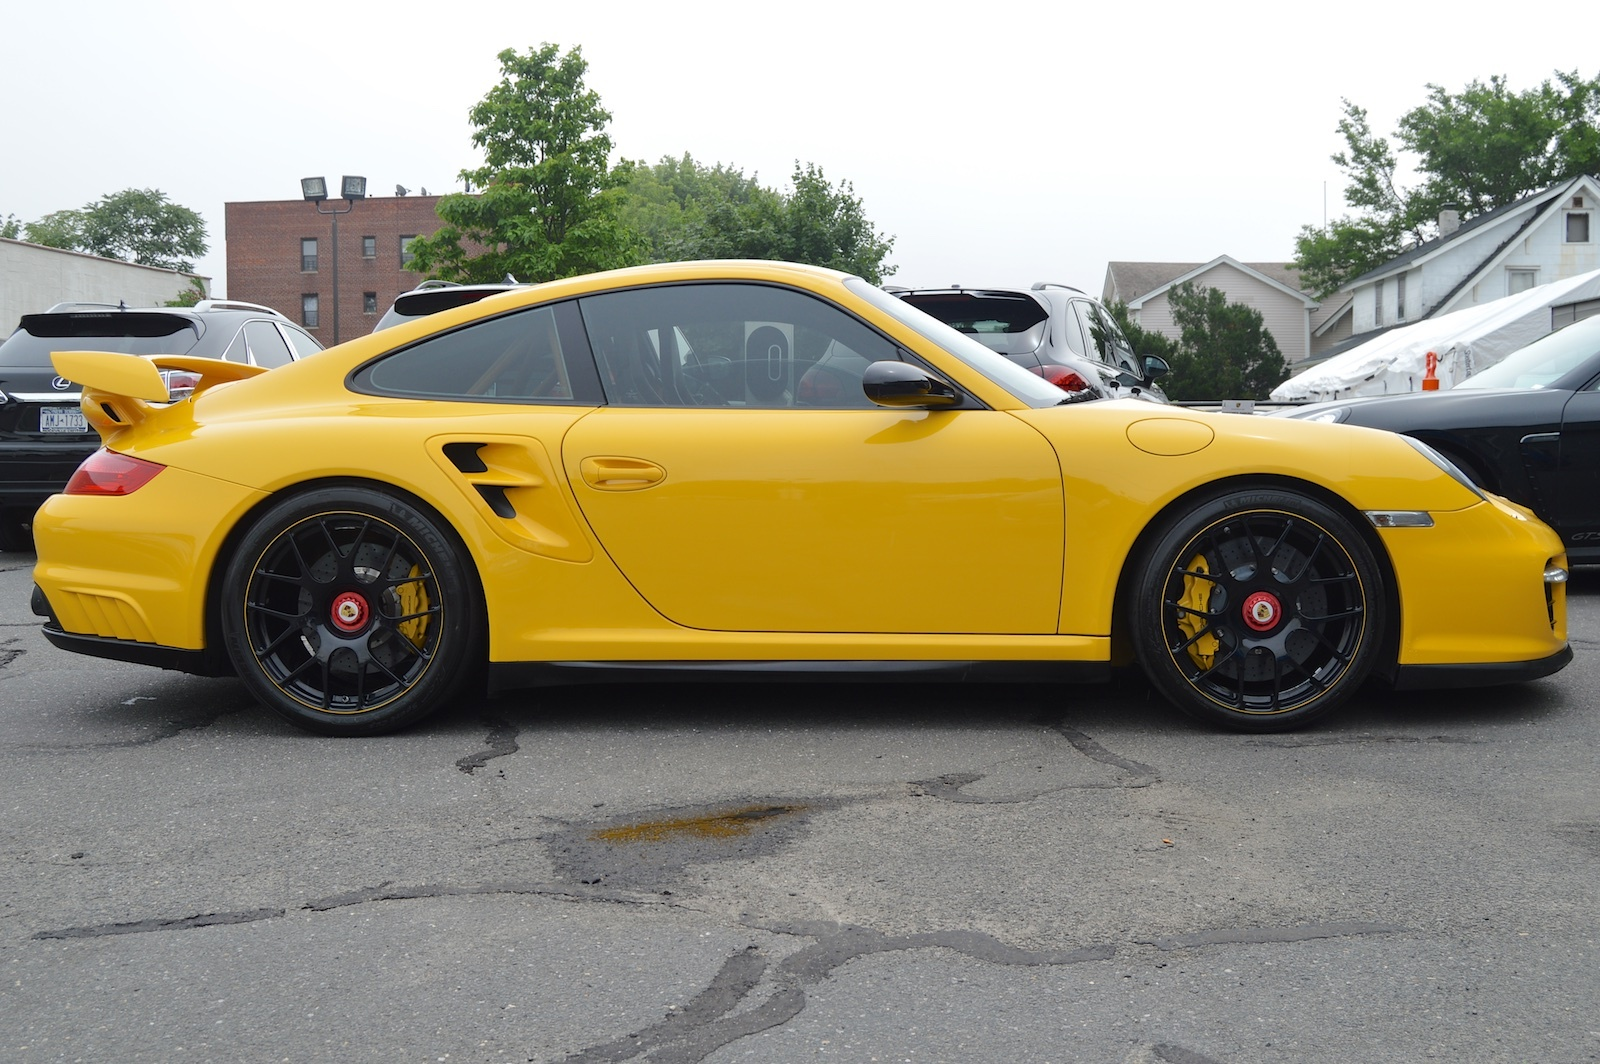 2008 Porsche 911 Gt2 Sales Price Buy Aircrafts